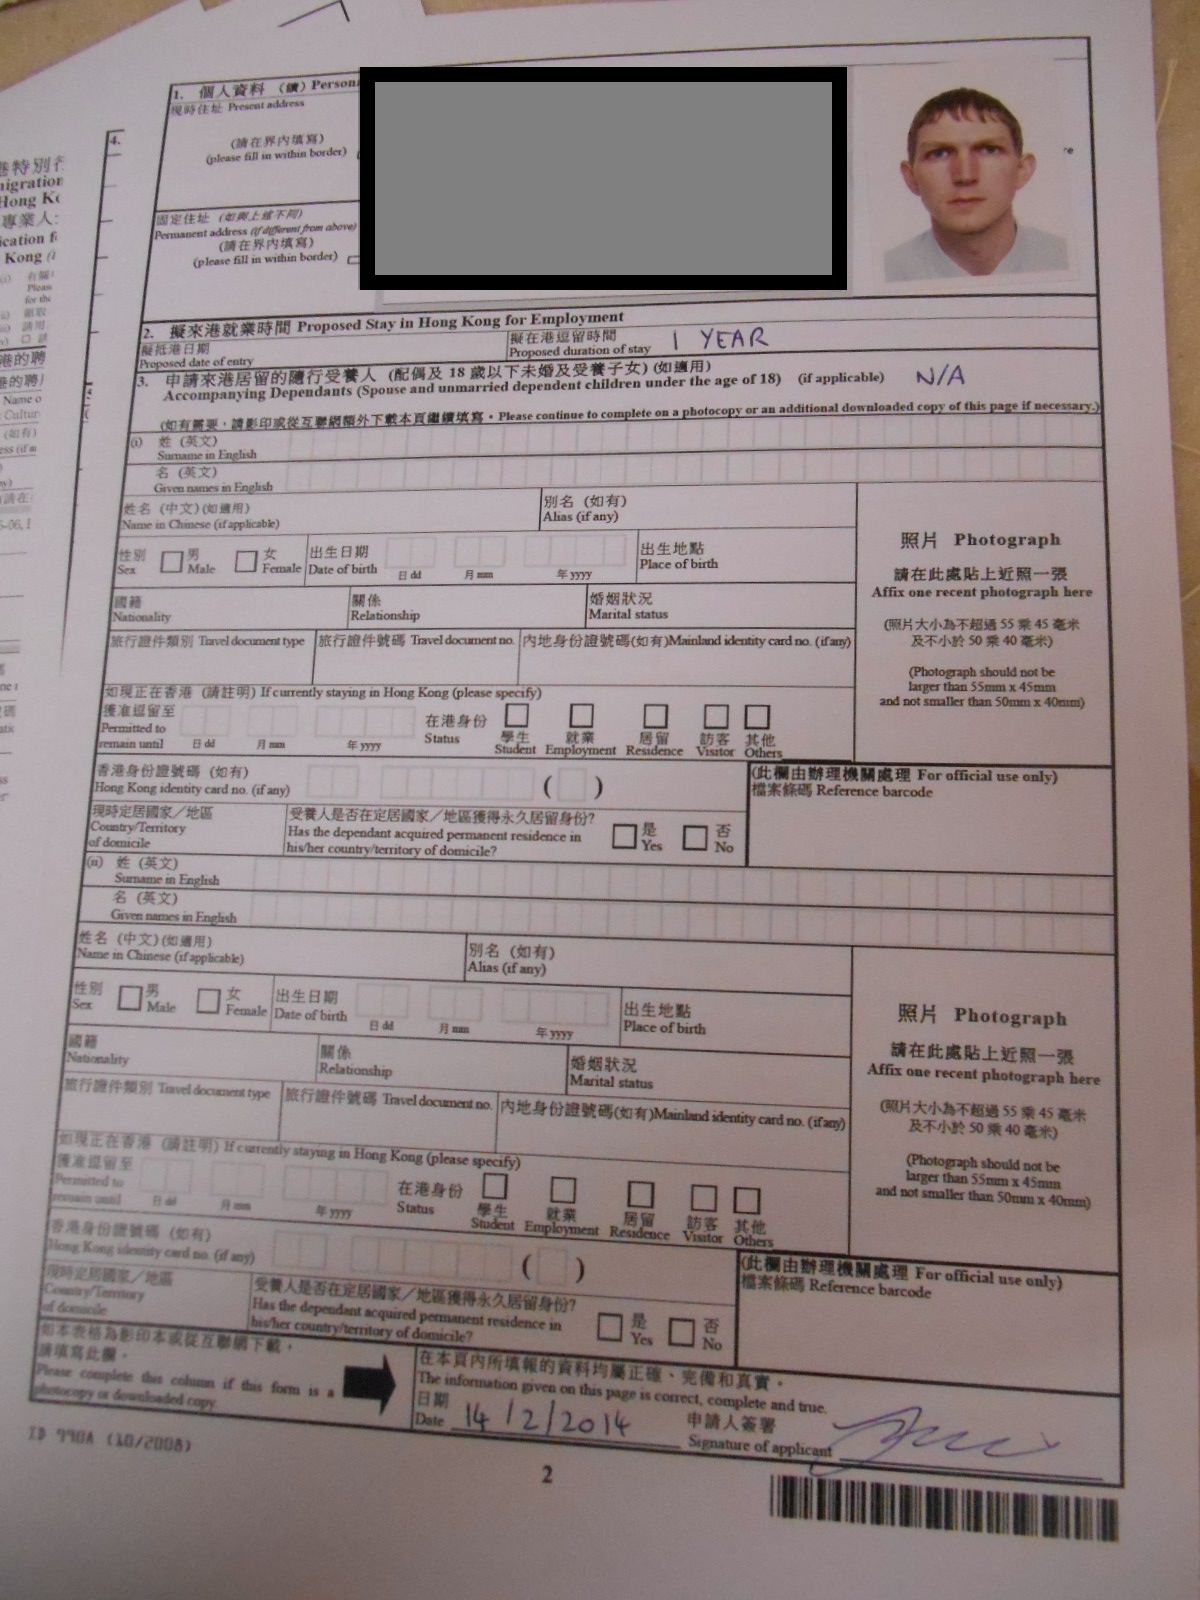 How to Get a Hong Kong Working Visa Job Card Renewal Form on job card size, name card form, employment application form, time card form, business card form, planning form, bin card form, insurance card form,